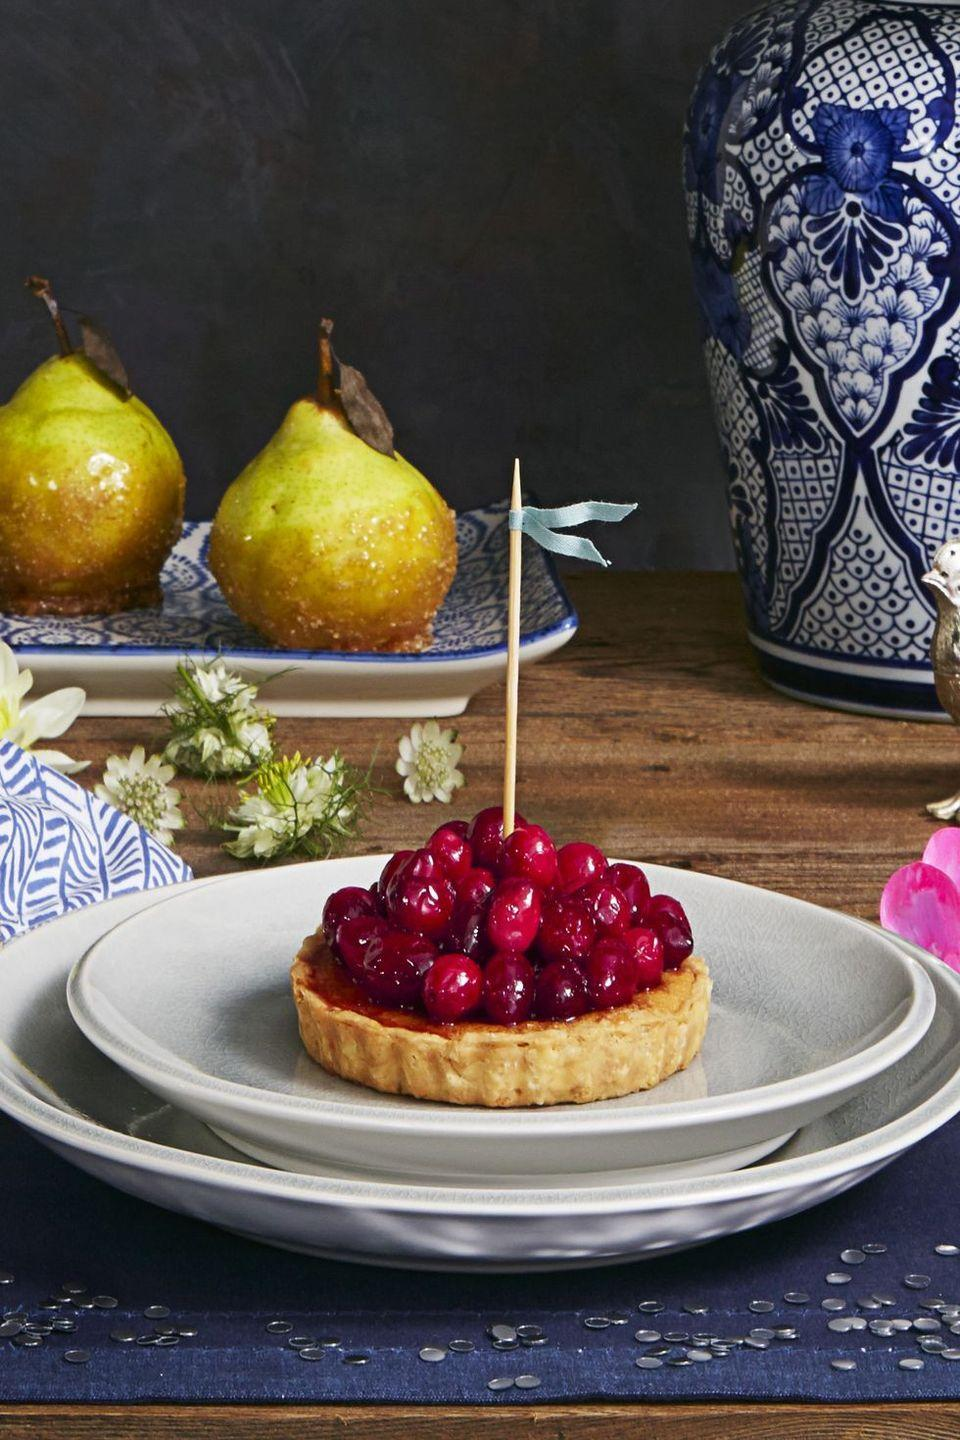 "<p>Take a slice out of our playbook and serve guests individual tarts rather than deal with the hassle of divvying up one big pie.</p><p><em><a href=""https://www.goodhousekeeping.com/food-recipes/dessert/a35186/cranberry-frangipane-tarts/"" rel=""nofollow noopener"" target=""_blank"" data-ylk=""slk:Get the recipe for Cranberry Frangipane Tarts »"" class=""link rapid-noclick-resp"">Get the recipe for Cranberry Frangipane Tarts »</a></em></p><p><strong>RELATED: </strong><a href=""https://www.goodhousekeeping.com/holidays/thanksgiving-ideas/g22854655/cranberry-recipes/"" rel=""nofollow noopener"" target=""_blank"" data-ylk=""slk:25 Sweet and Savory Cranberry Recipes That Go Beyond the Sauce"" class=""link rapid-noclick-resp"">25 Sweet and Savory Cranberry Recipes That Go Beyond the Sauce </a></p>"